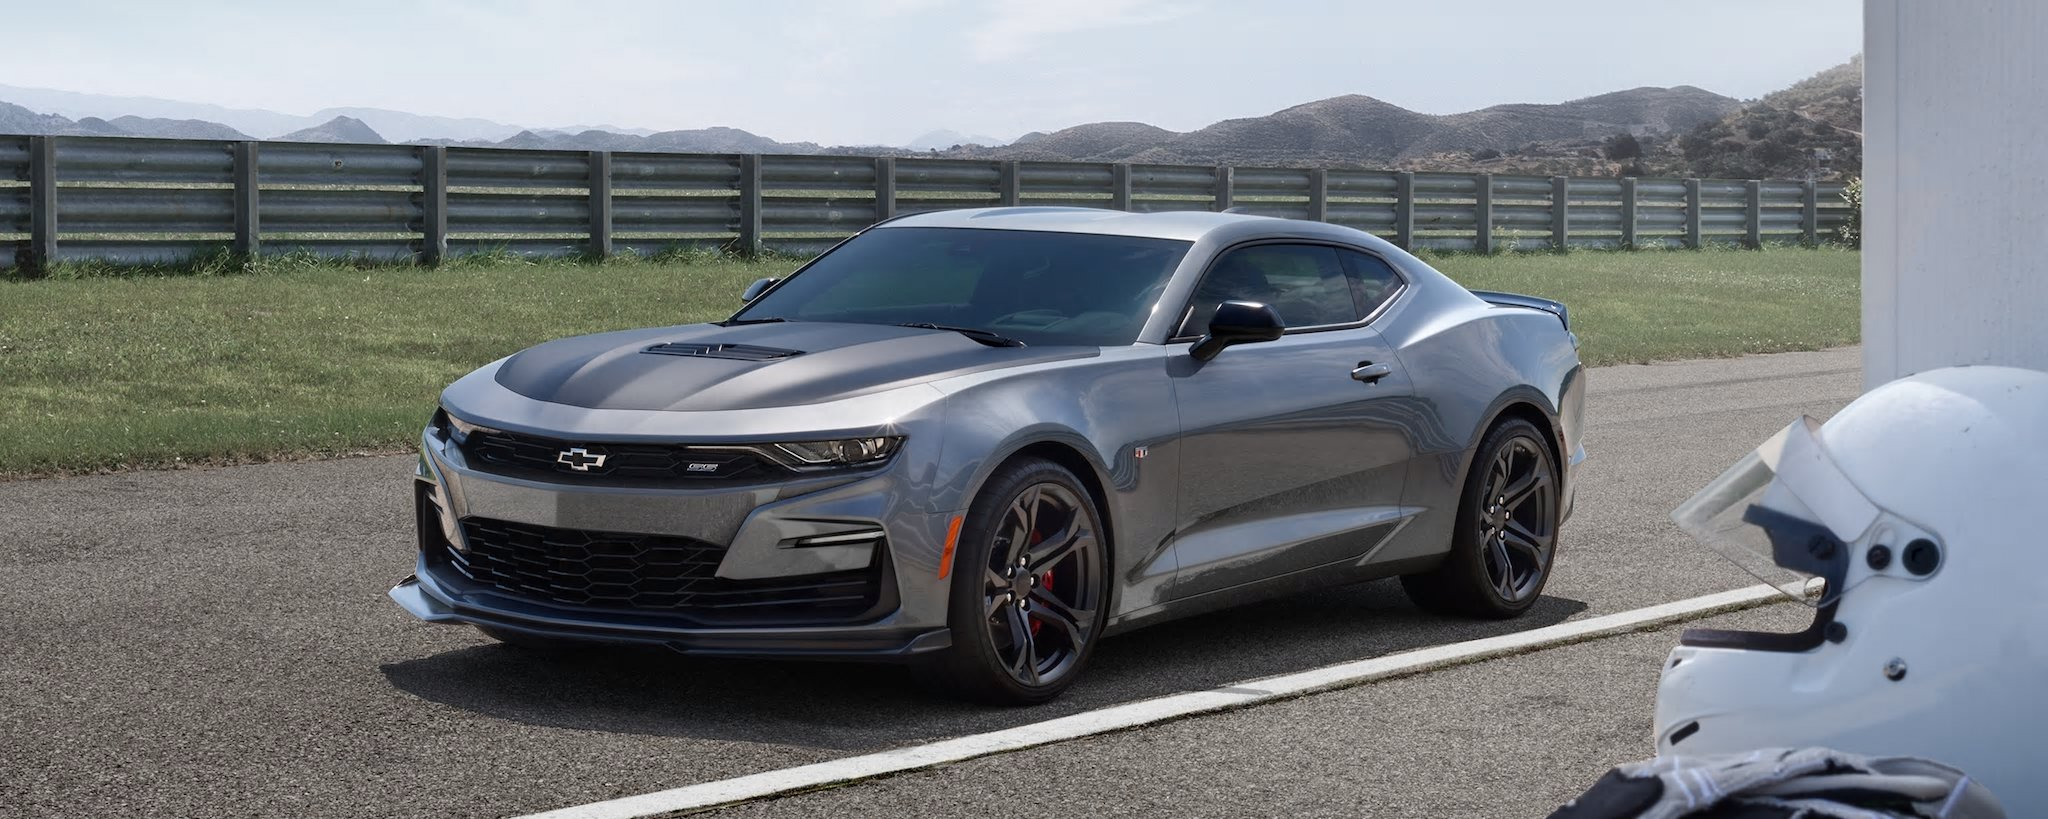 2020 The Camaro Ss Pricing